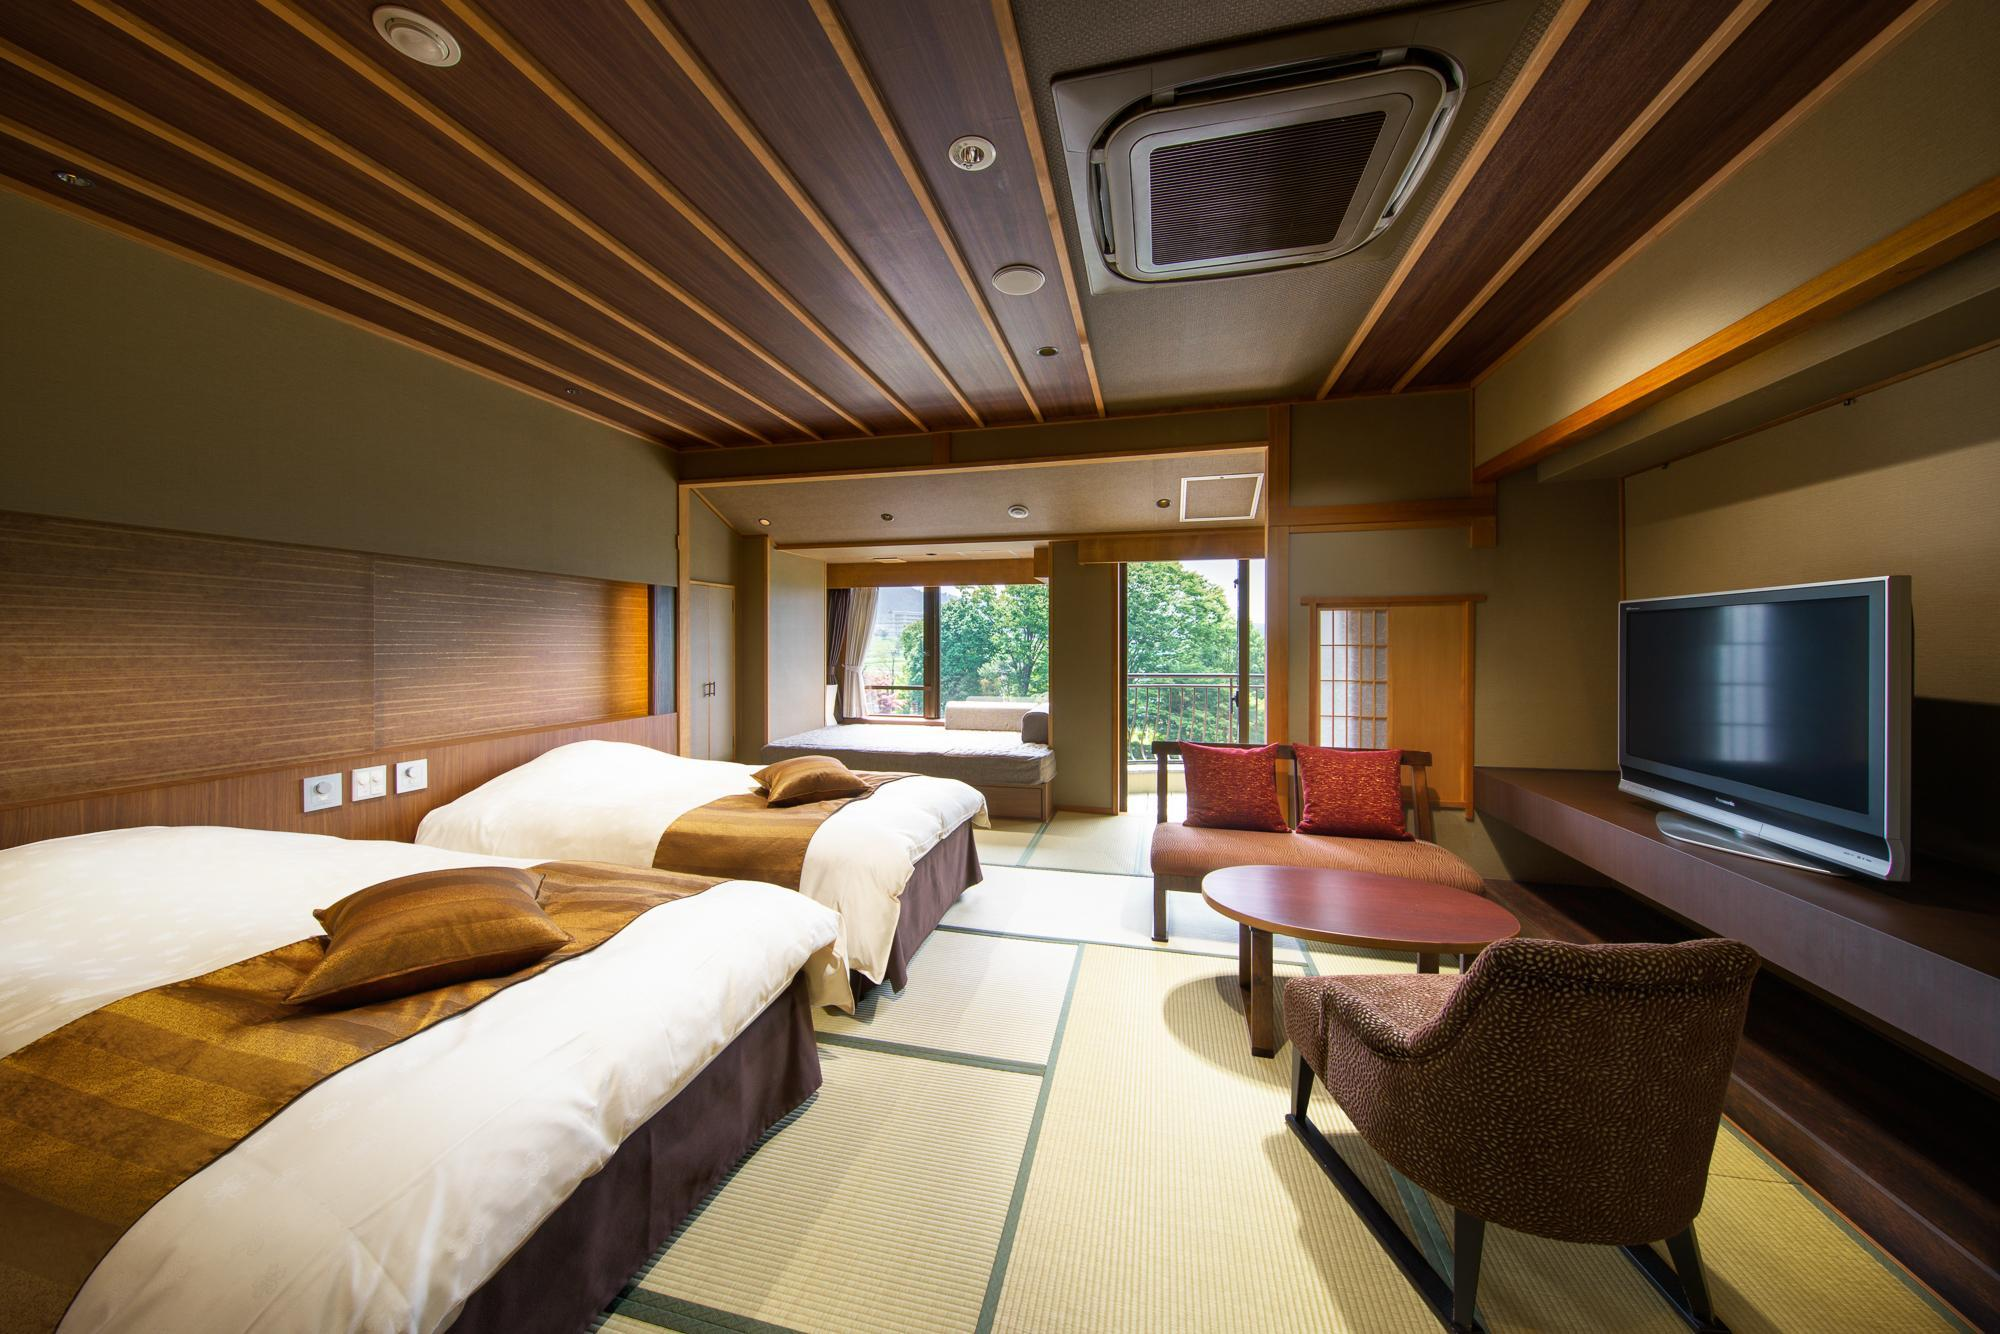 Seseragi-tei Mount Fuji View Japanese Style Twin Room - Non-Smoking